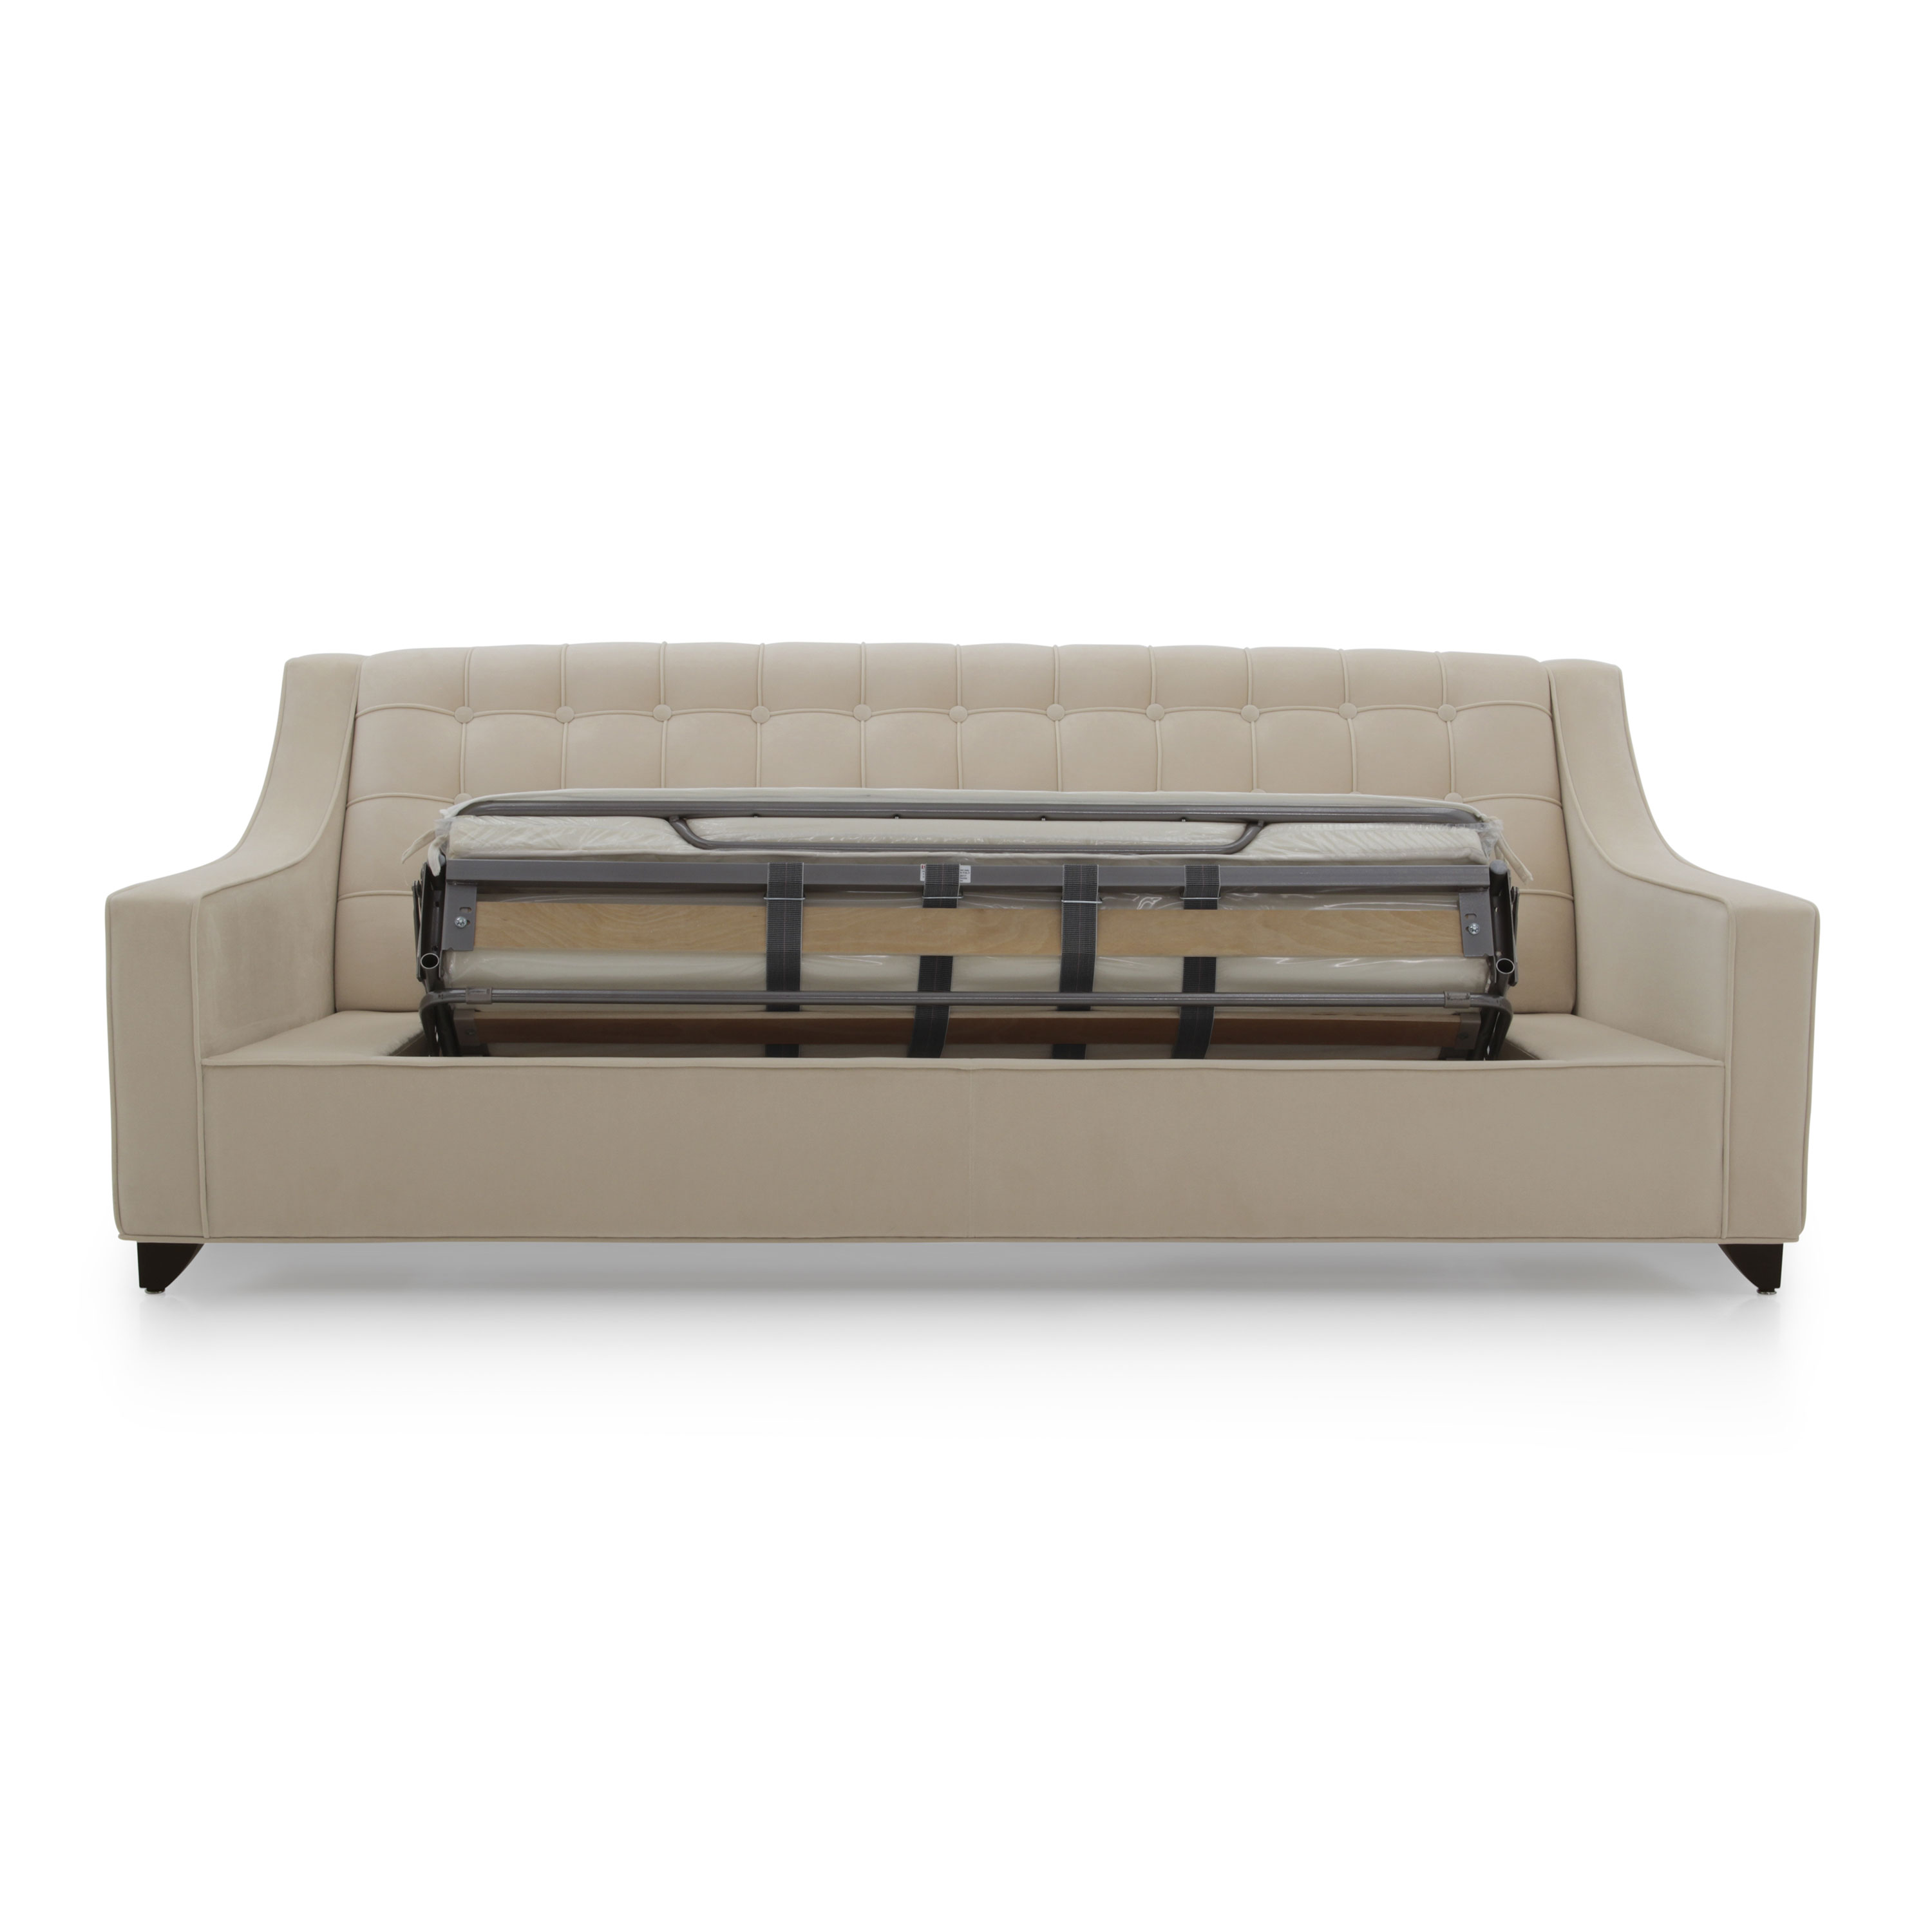 Enjoyable Sofa With Contemporary Lines Giunone Sevensedie Caraccident5 Cool Chair Designs And Ideas Caraccident5Info